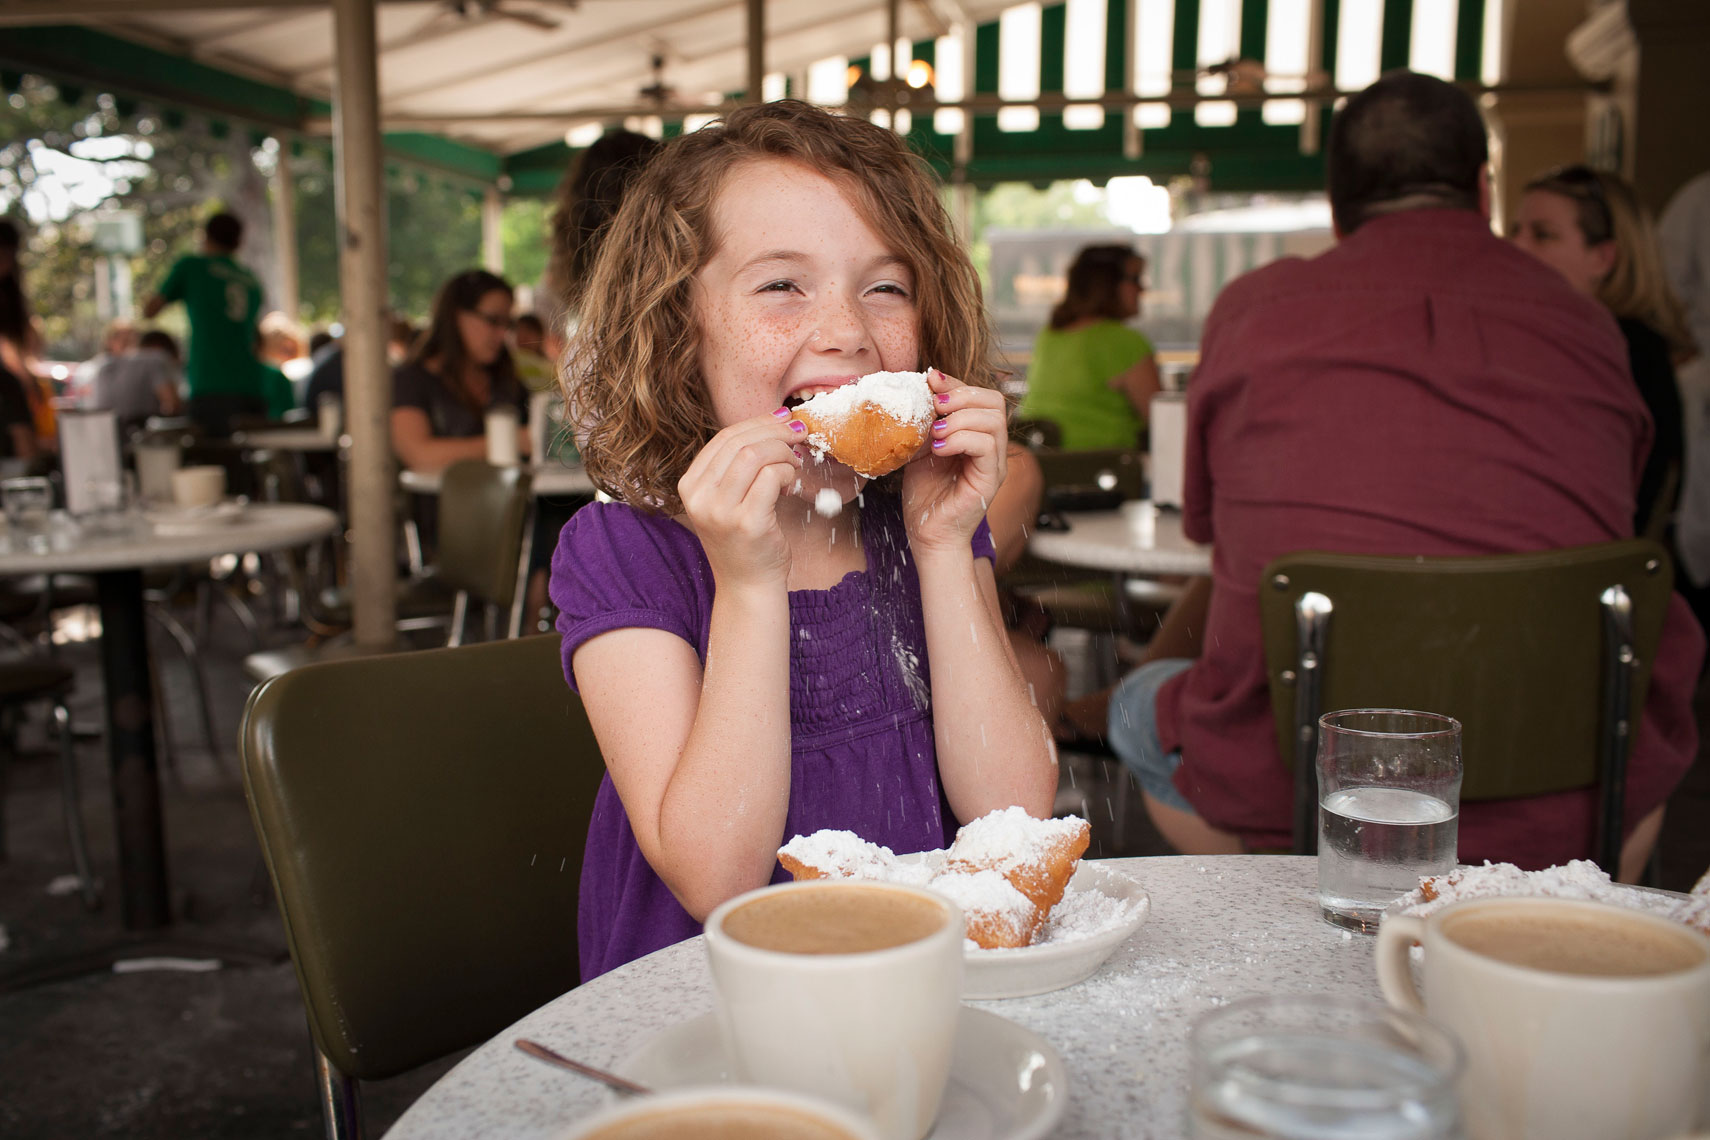 Callie Hirsch eating beignets at Cafe